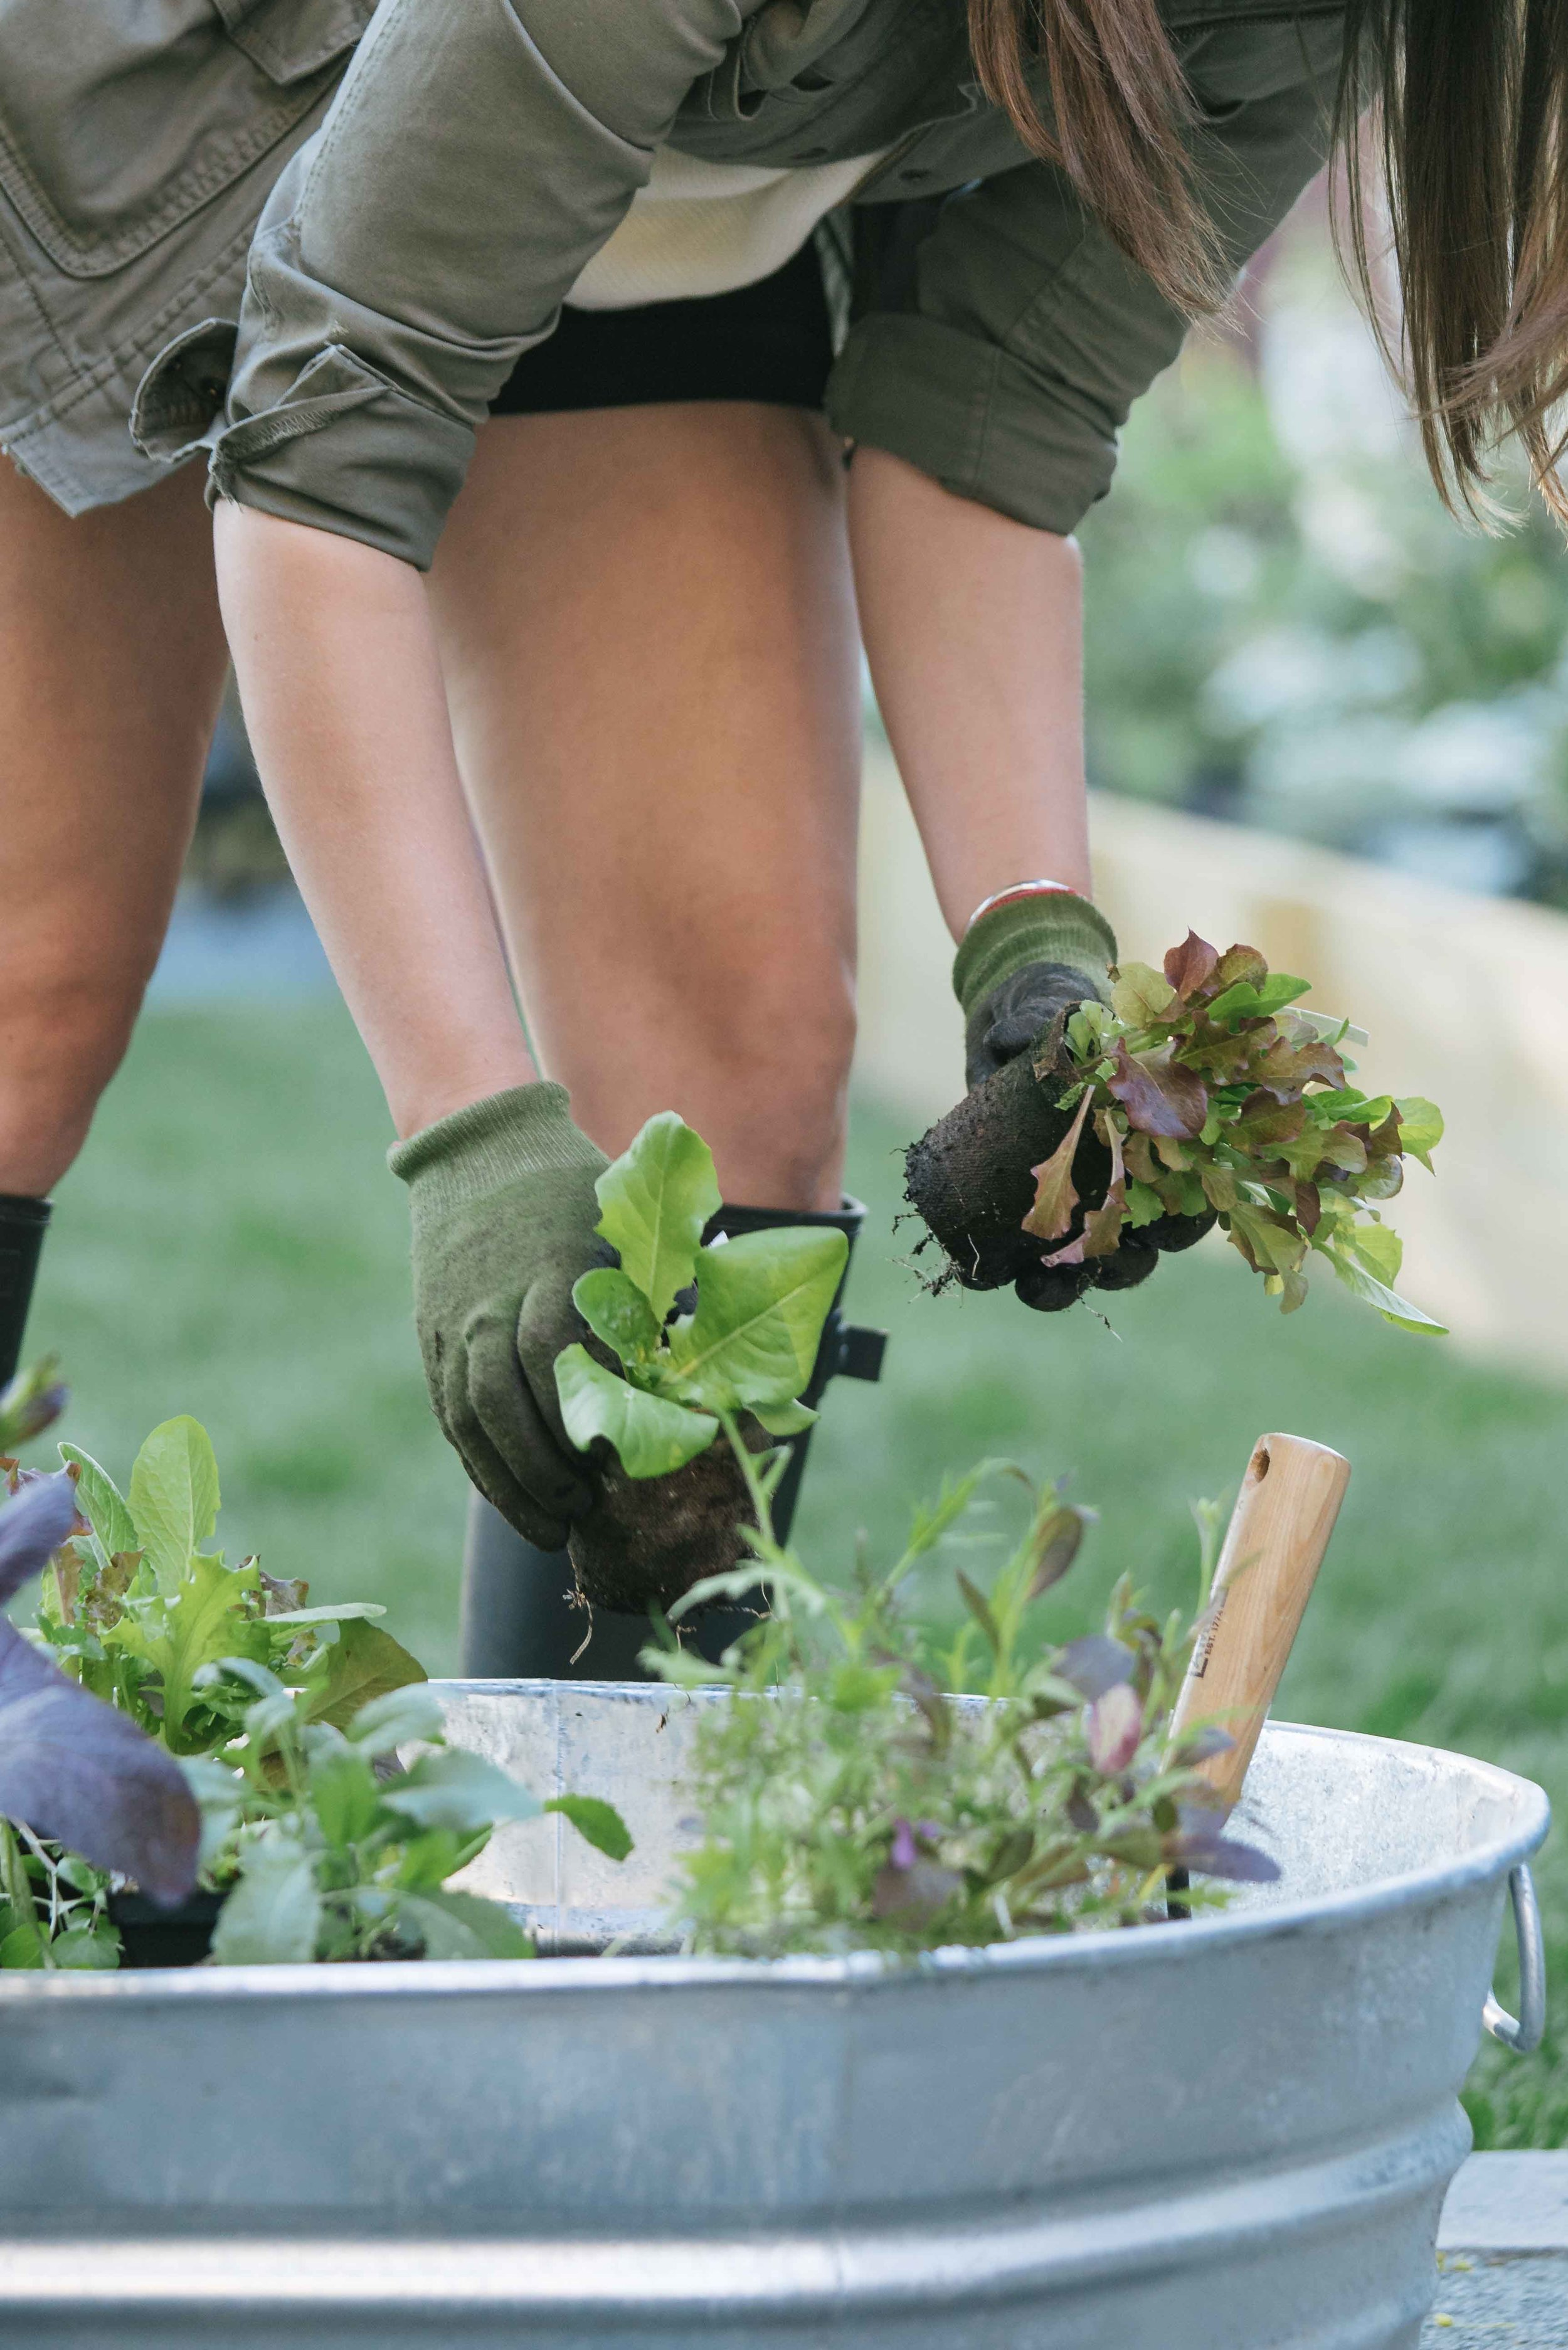 How to Grow Your Own Greens and Lettuce